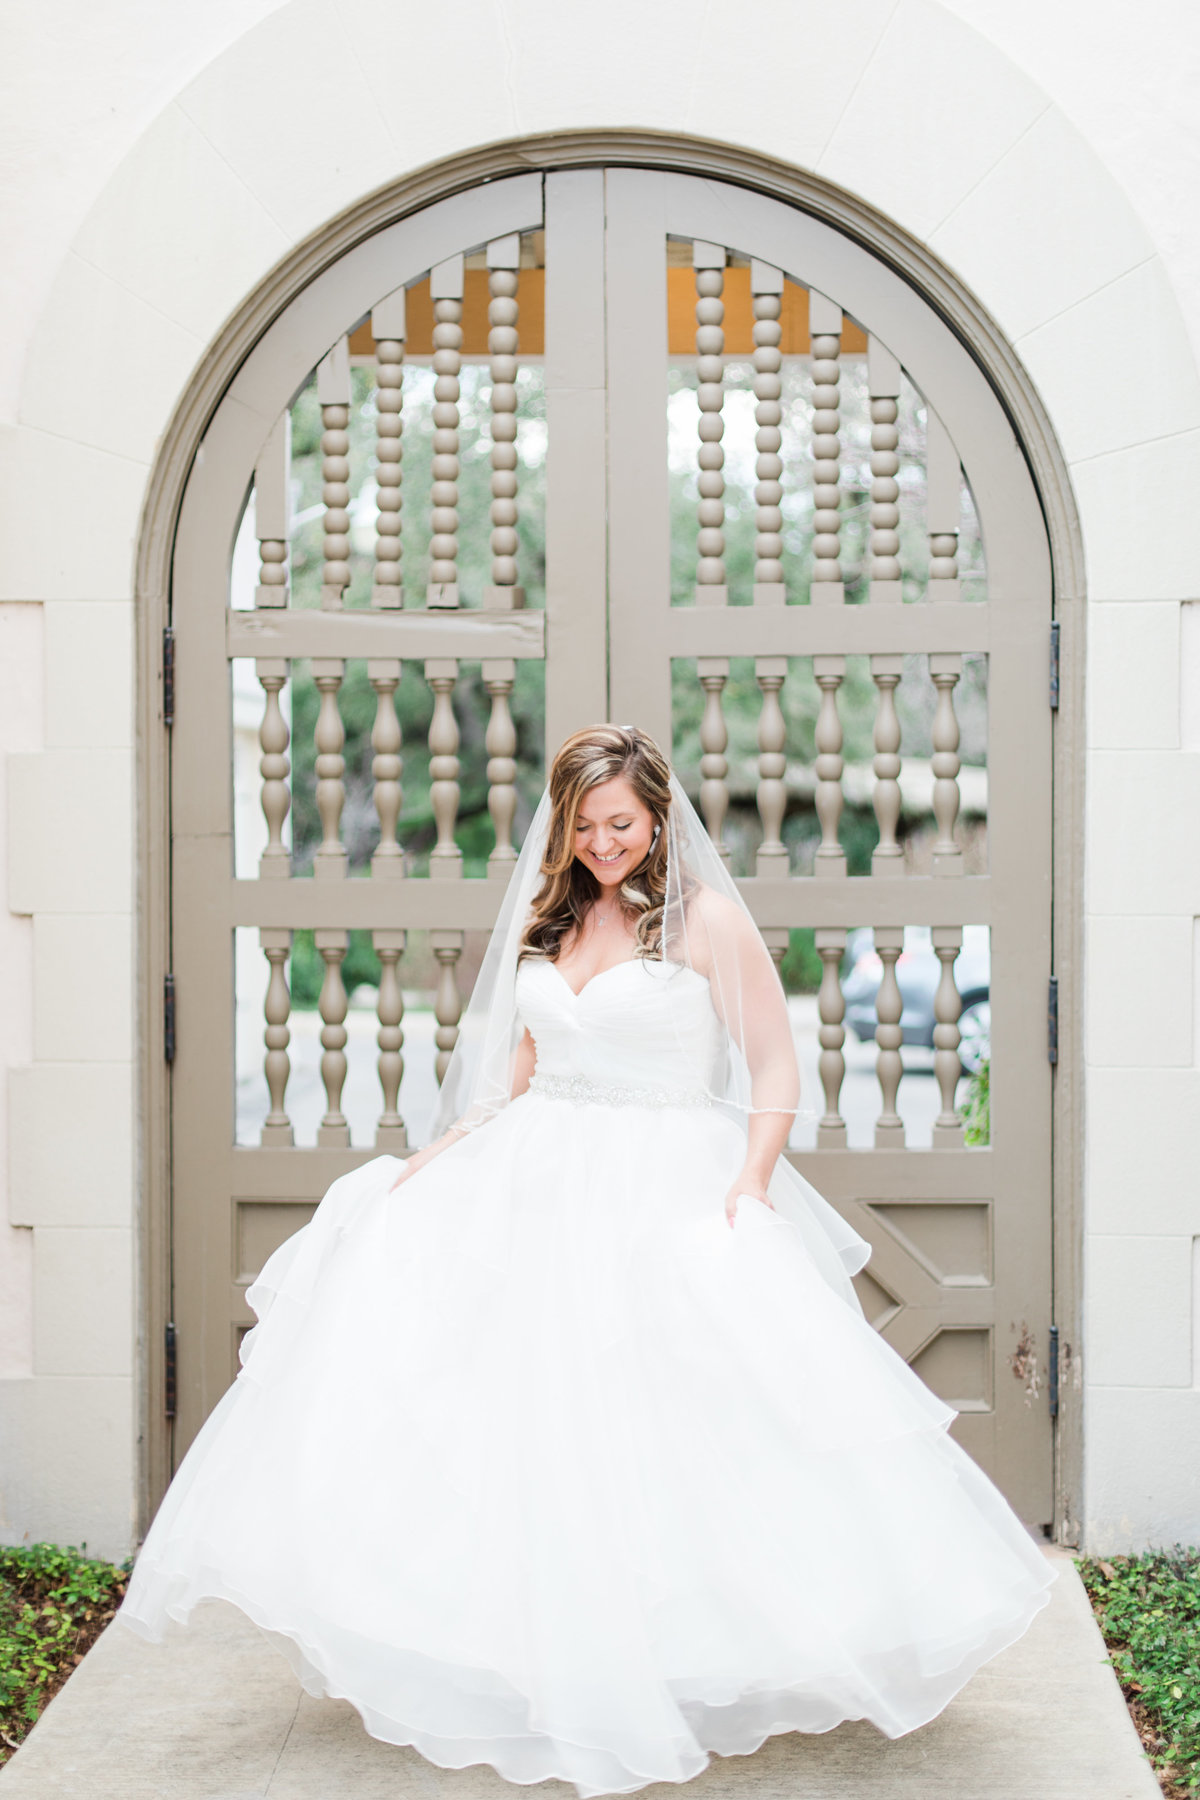 A Bridal Session at Landa Library Wedding Photos by Allison Jeffers Wedding Photography_San Antonio Wedding Photographer_003